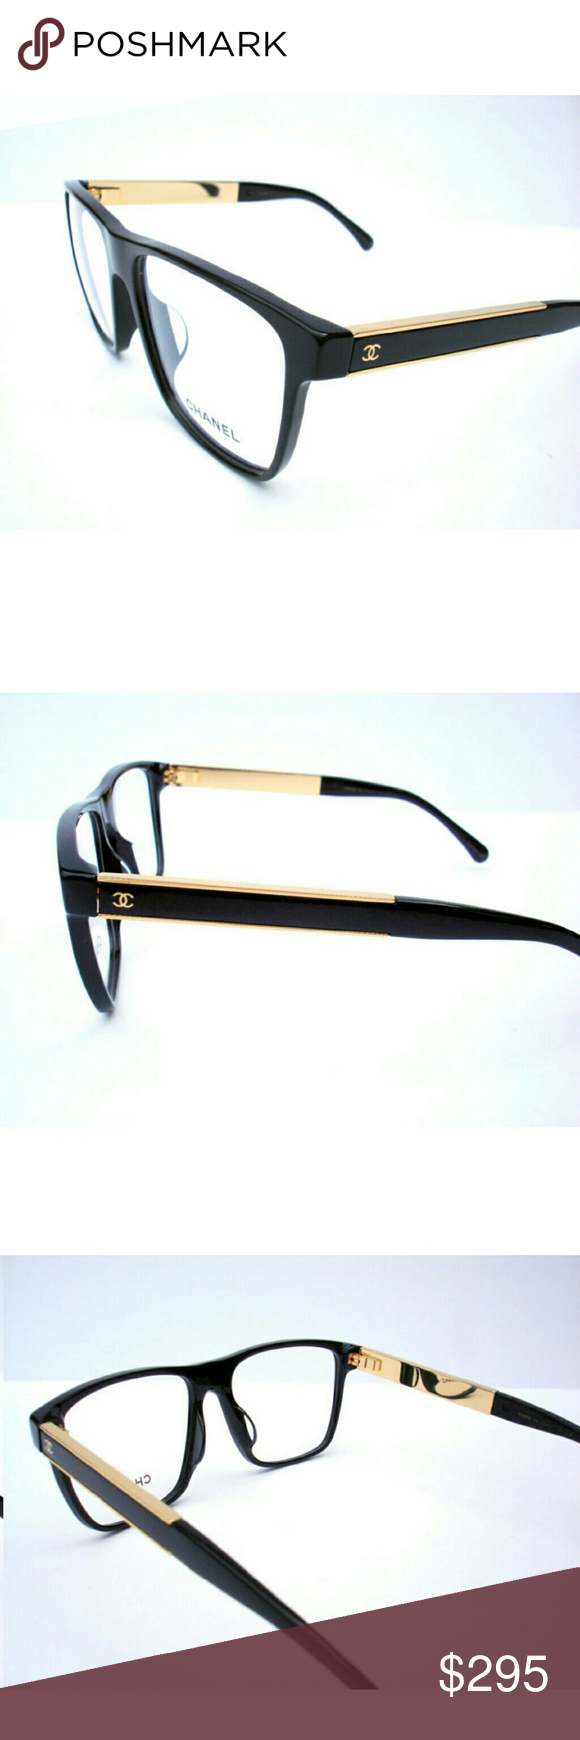 55b593fe1e0 Chanel Eyeglasses Authentic chanel Eyeglasses Black and gold frame Size  55-16-140 Includes original case only Chanel Accessories Glasses